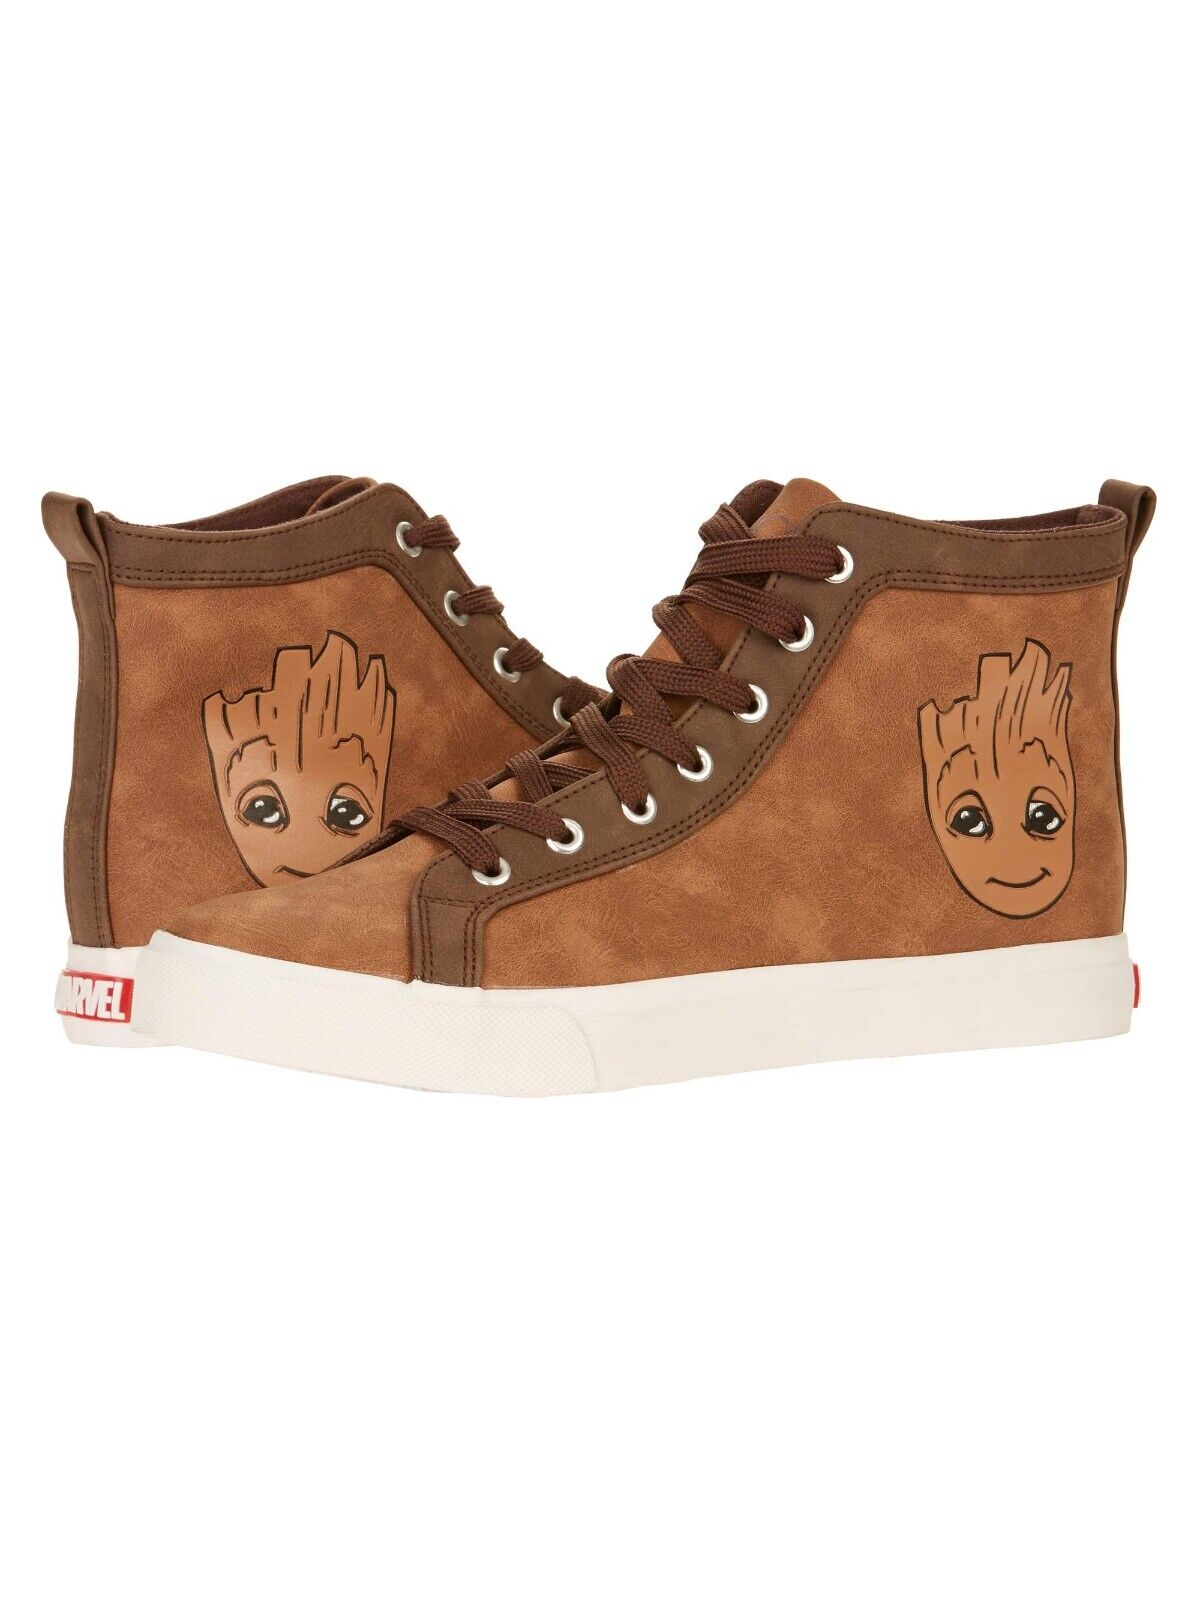 SZ 12 Marvel GROOT HighTops Sneakers shoes Avengers Guardians Of The Galaxy GOTG